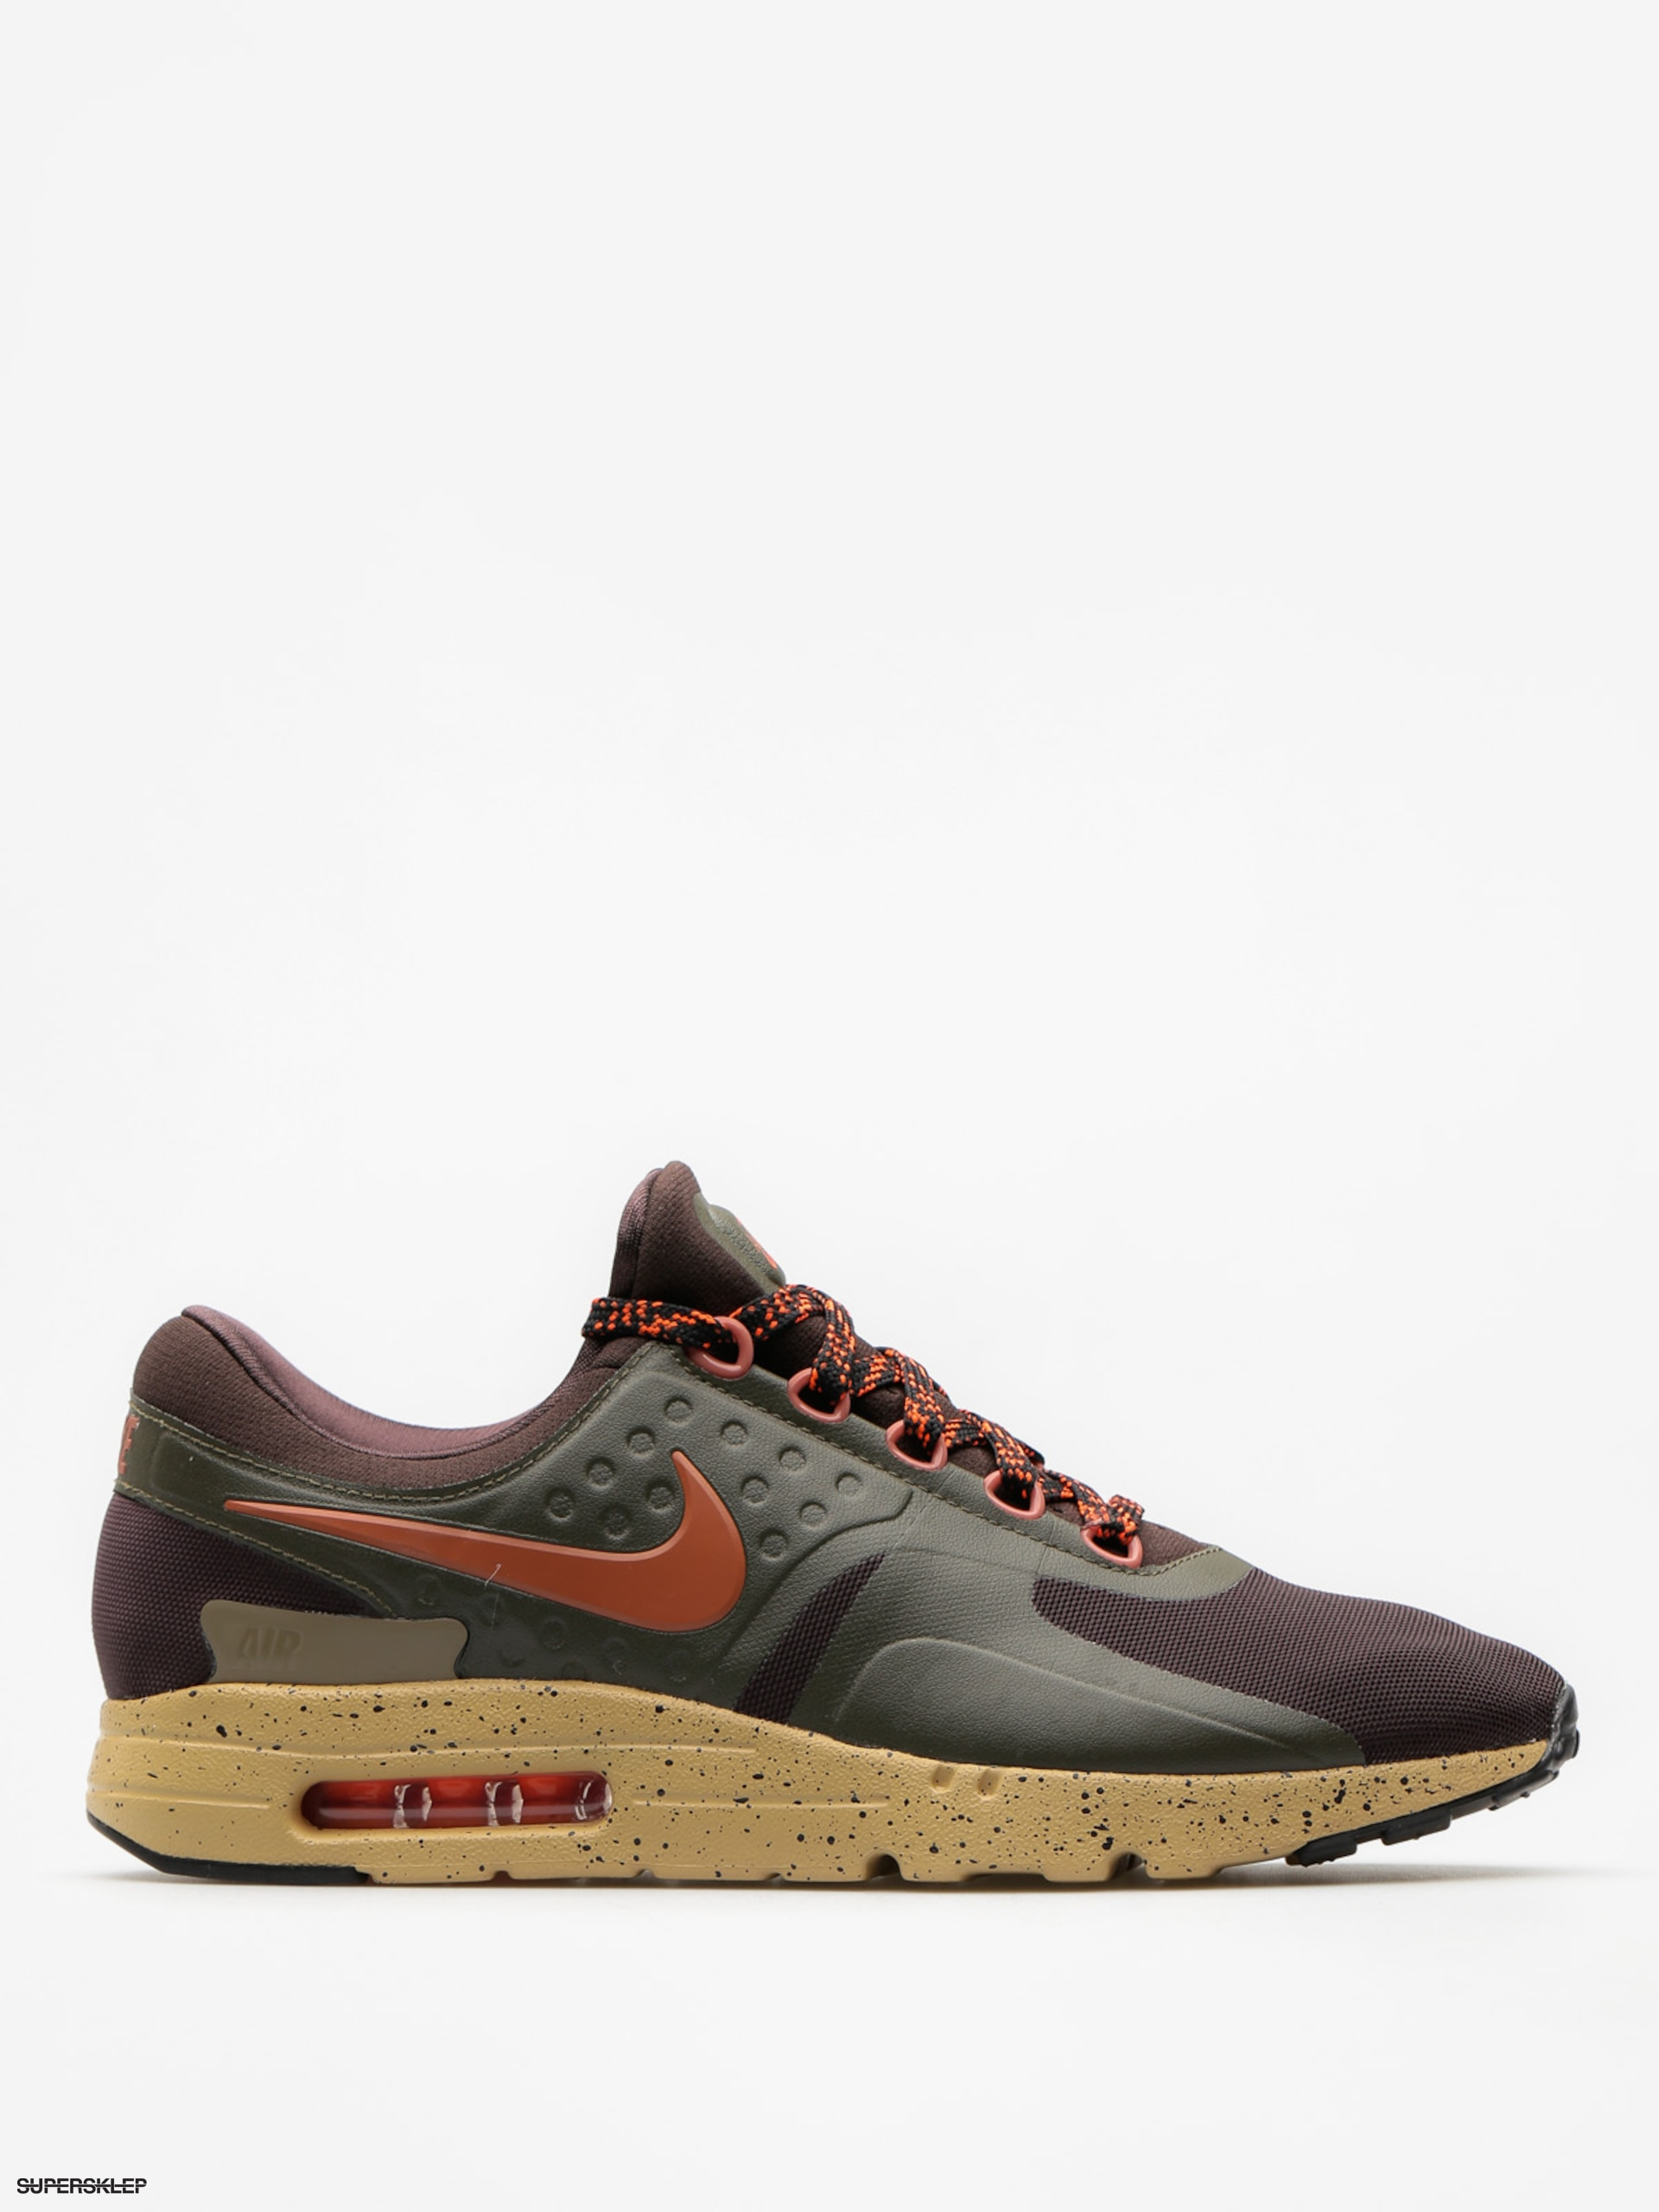 Boty Nike Air Max Zero Se (velvet brown/dusty peach cargo khaki)